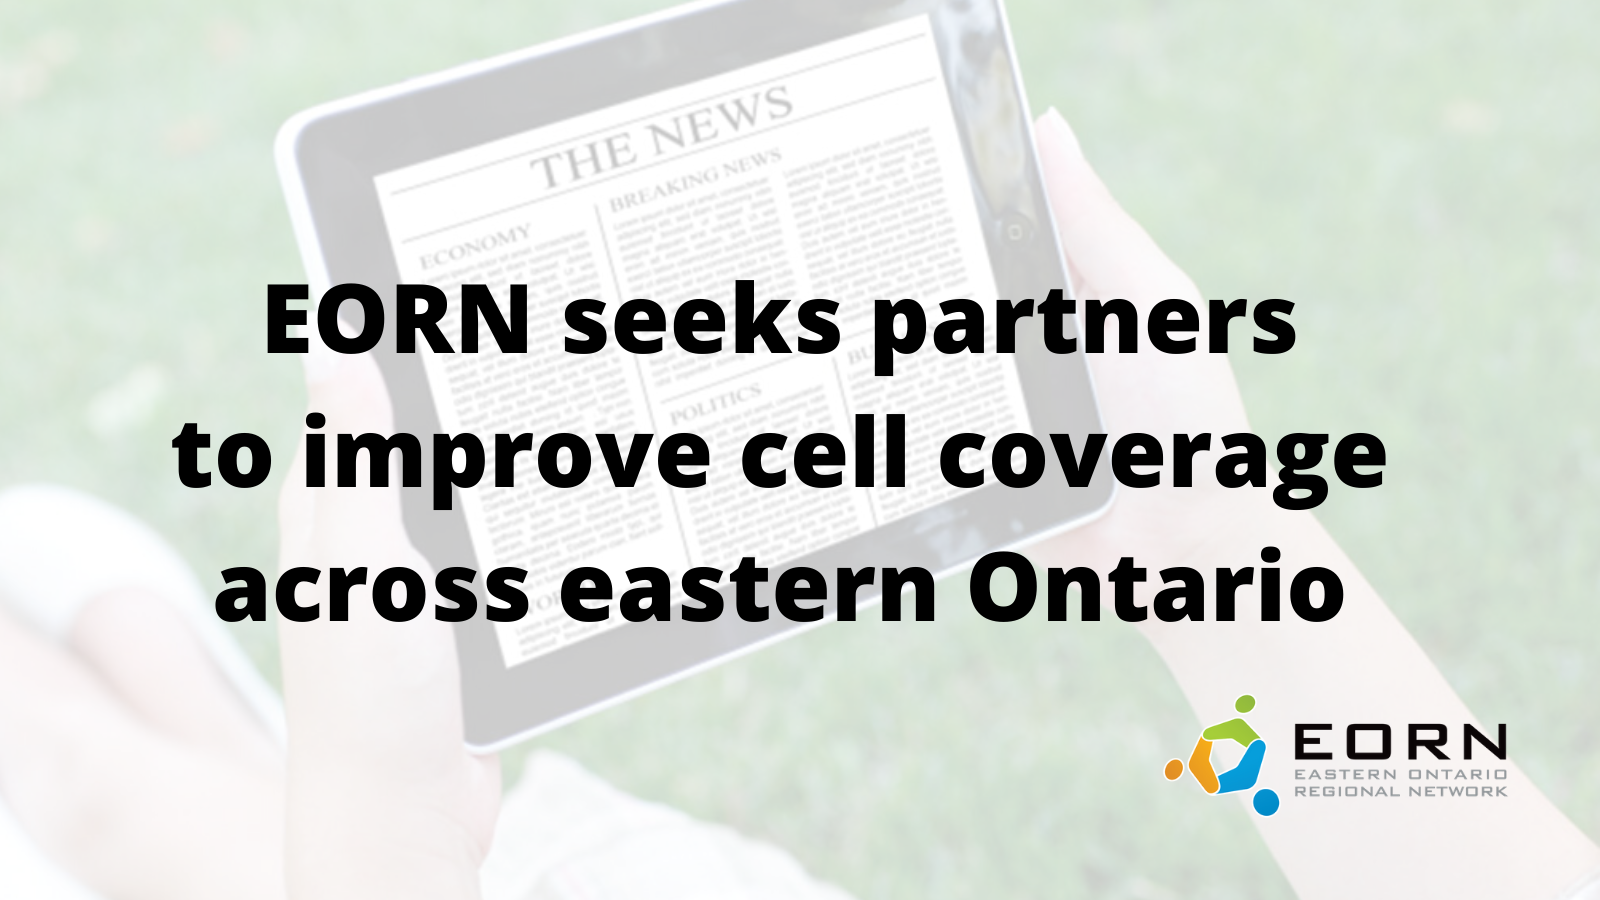 EORN Seeks Partners to Improve Cell Coverage